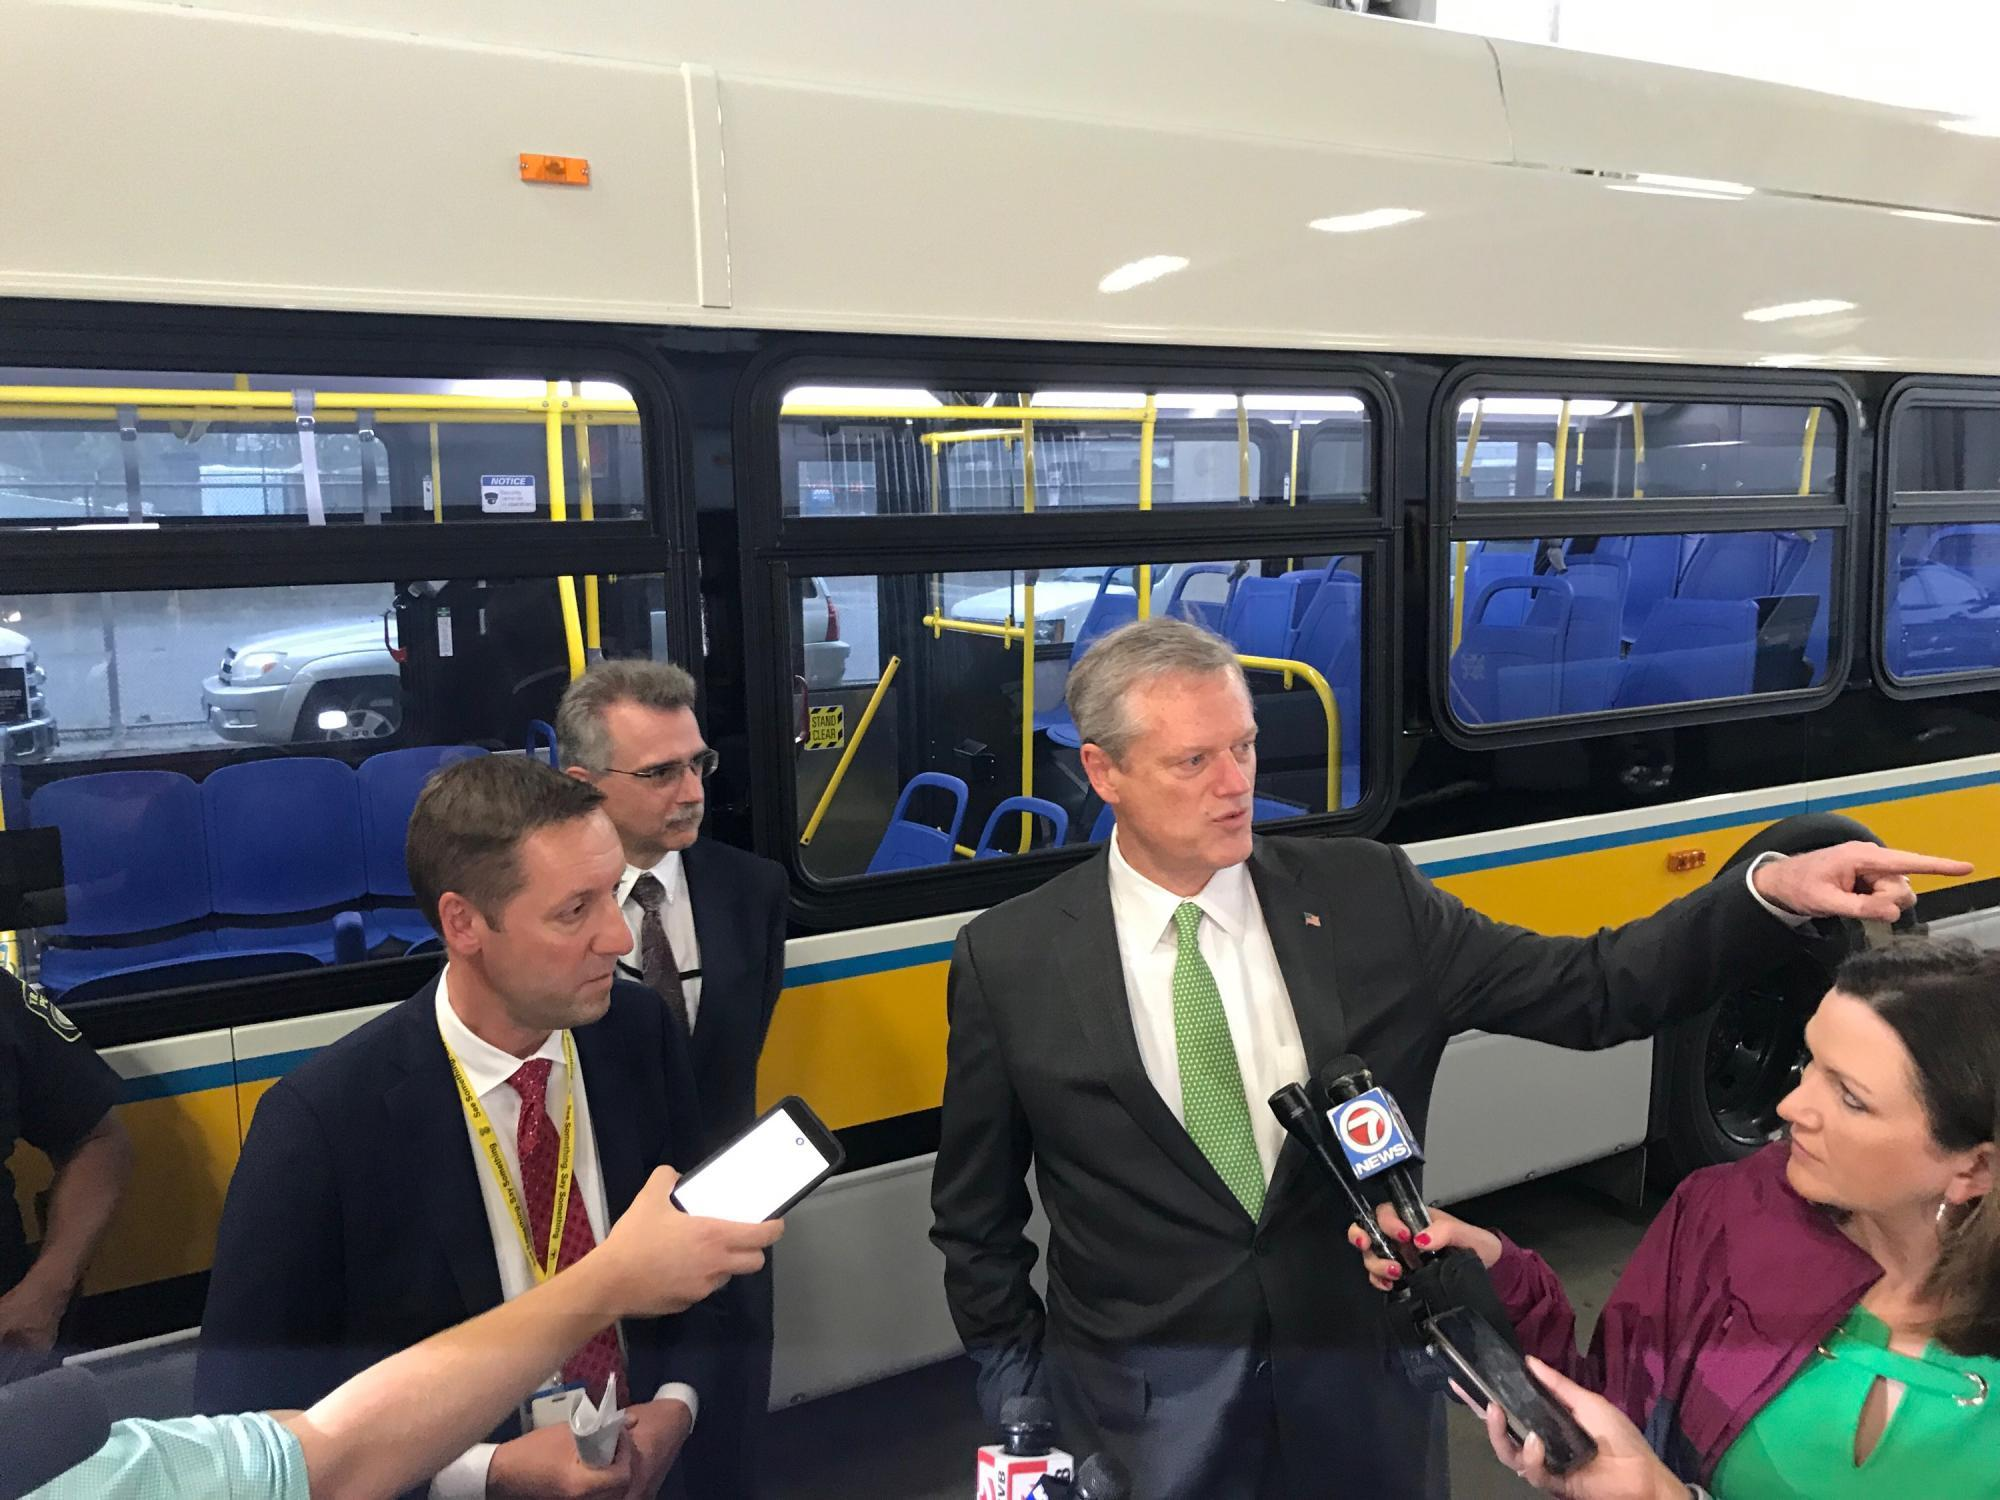 GM Poftak and Governor Baker at the battery-electric bus event